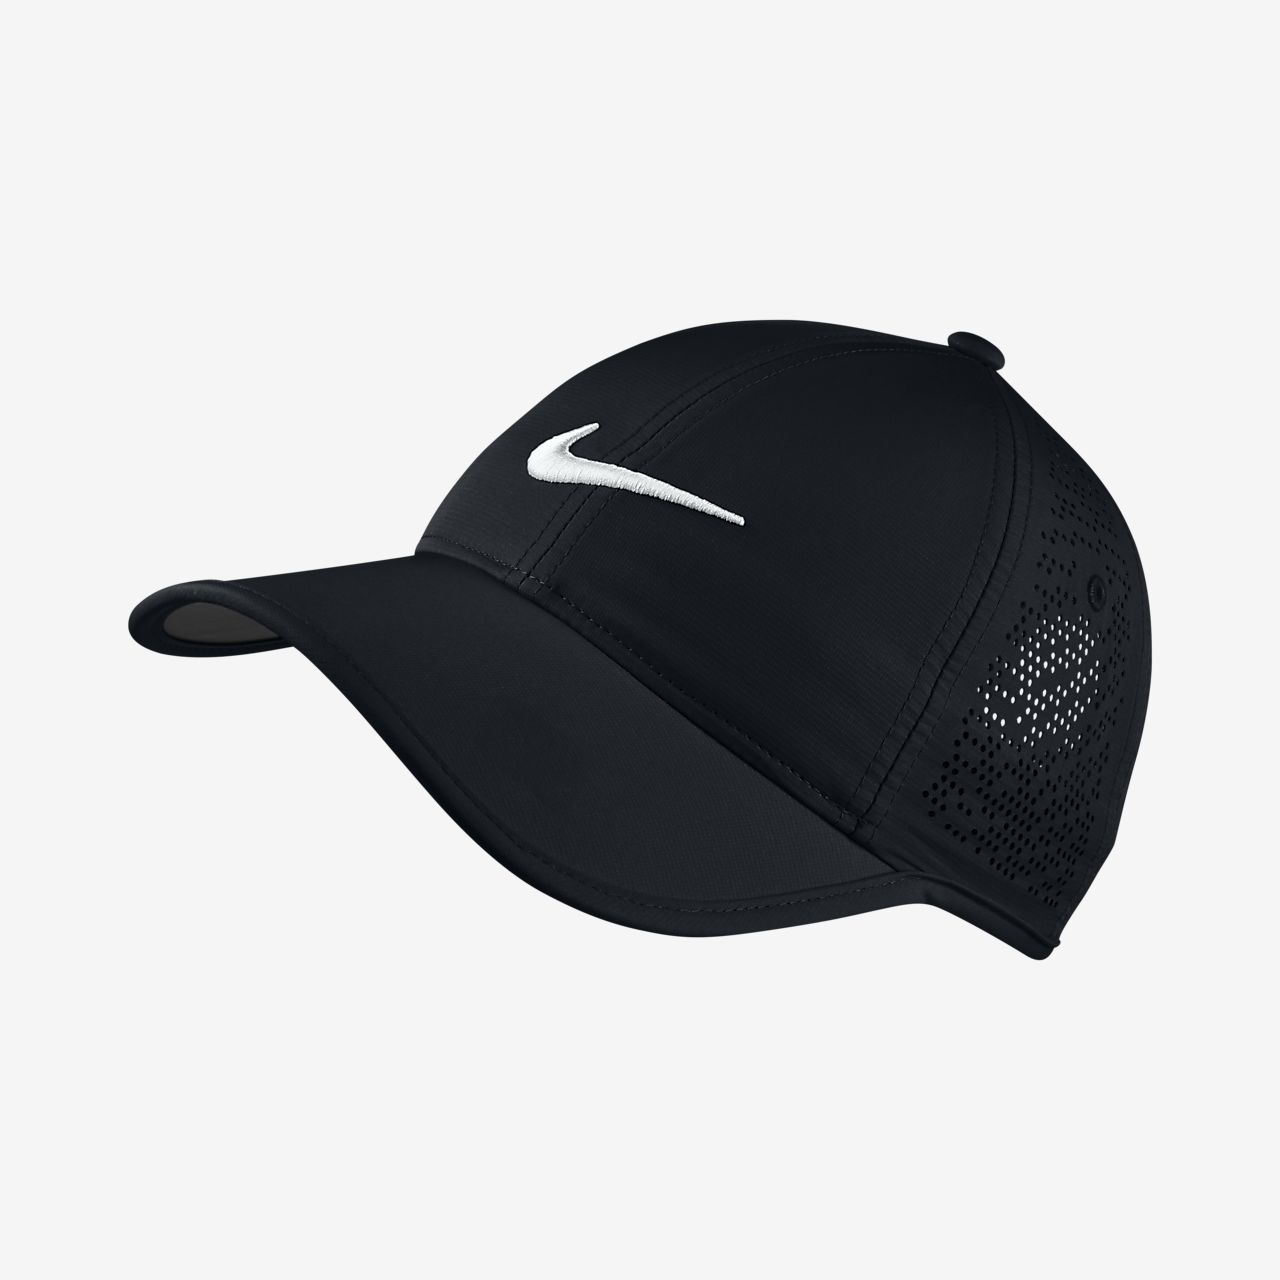 casquette de golf r glable nike perforated pour femme fr. Black Bedroom Furniture Sets. Home Design Ideas